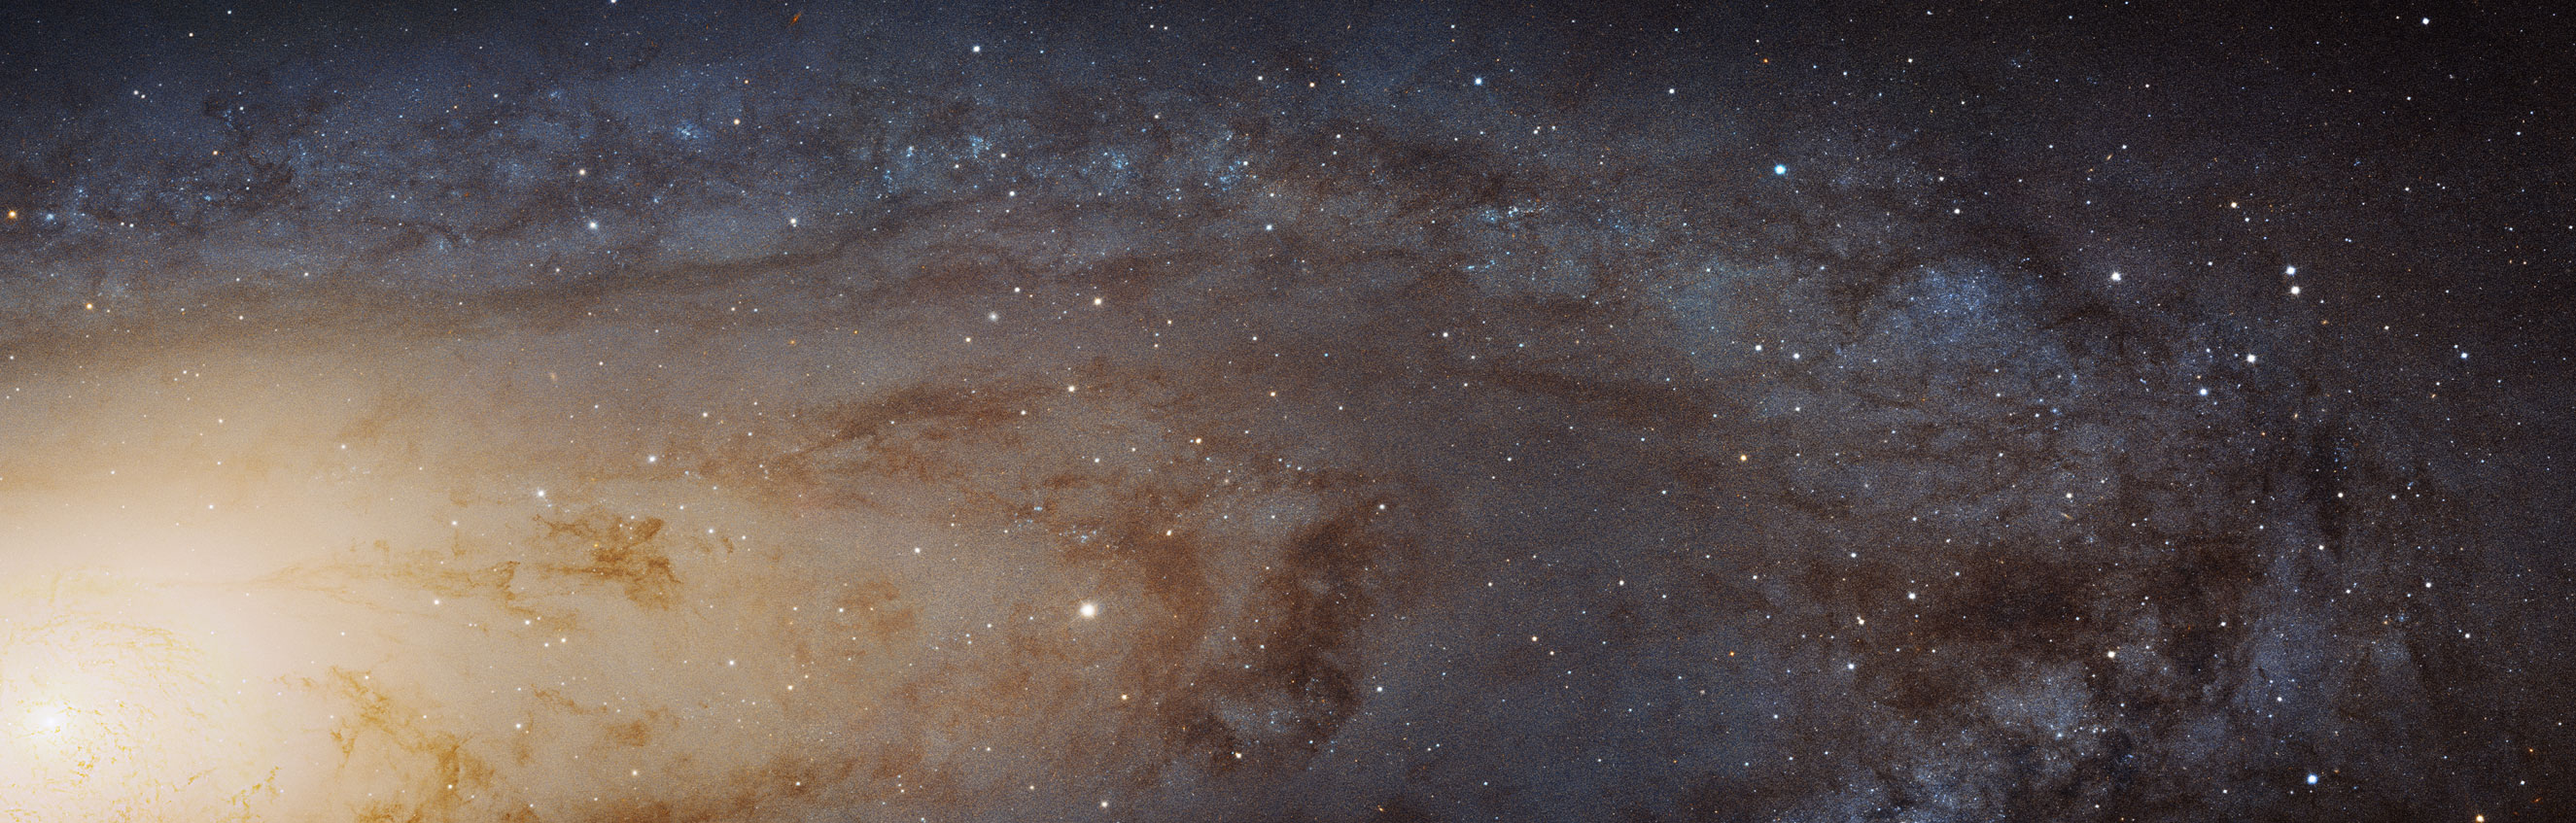 Andromeda: This is the largest and sharpest image ever taken of the Andromeda galaxy. It is the biggest Hubble image ever released and shows over 100 million stars and thousands of star clusters embedded in a section of the galaxy's pancake-shaped disc stretching across over 40,000 light-years. Image released on Jan. 5, 2015